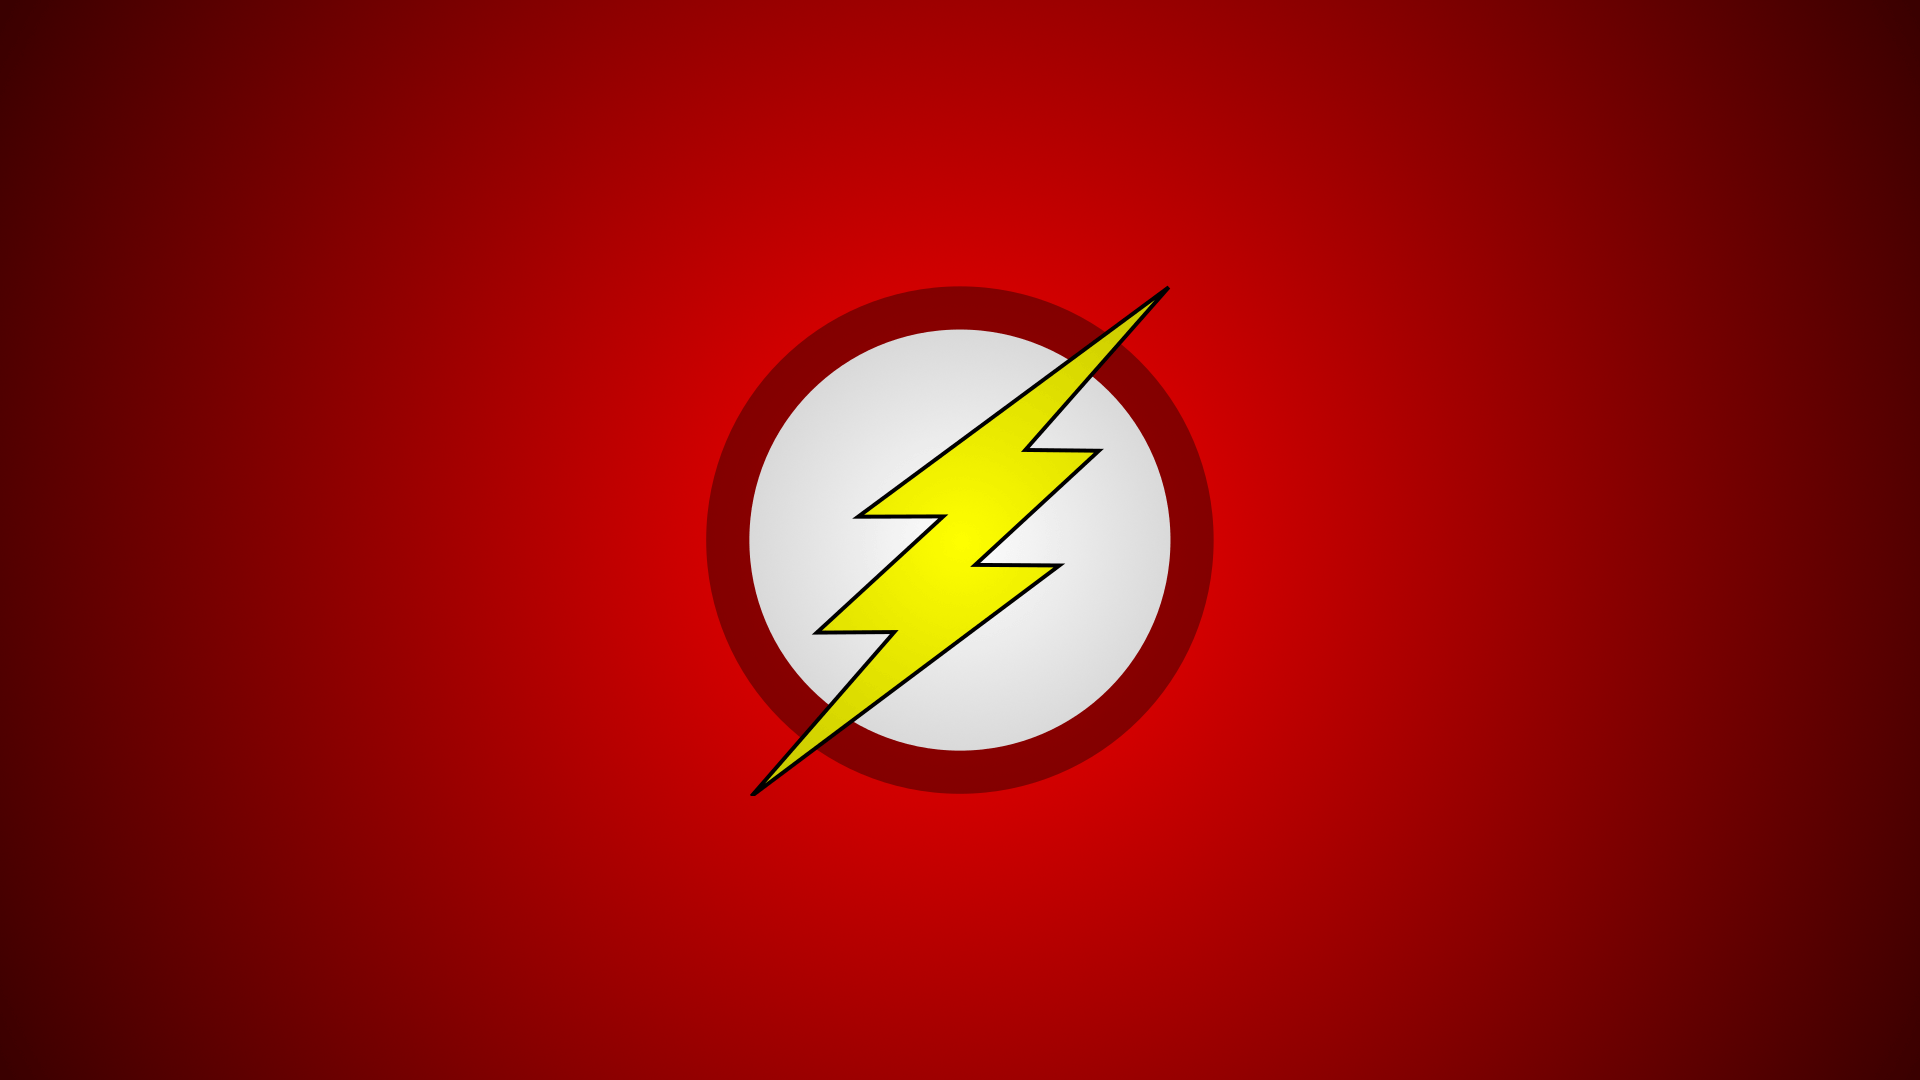 Flash And Reverse Flash Wallpapers Top Free Flash And Reverse